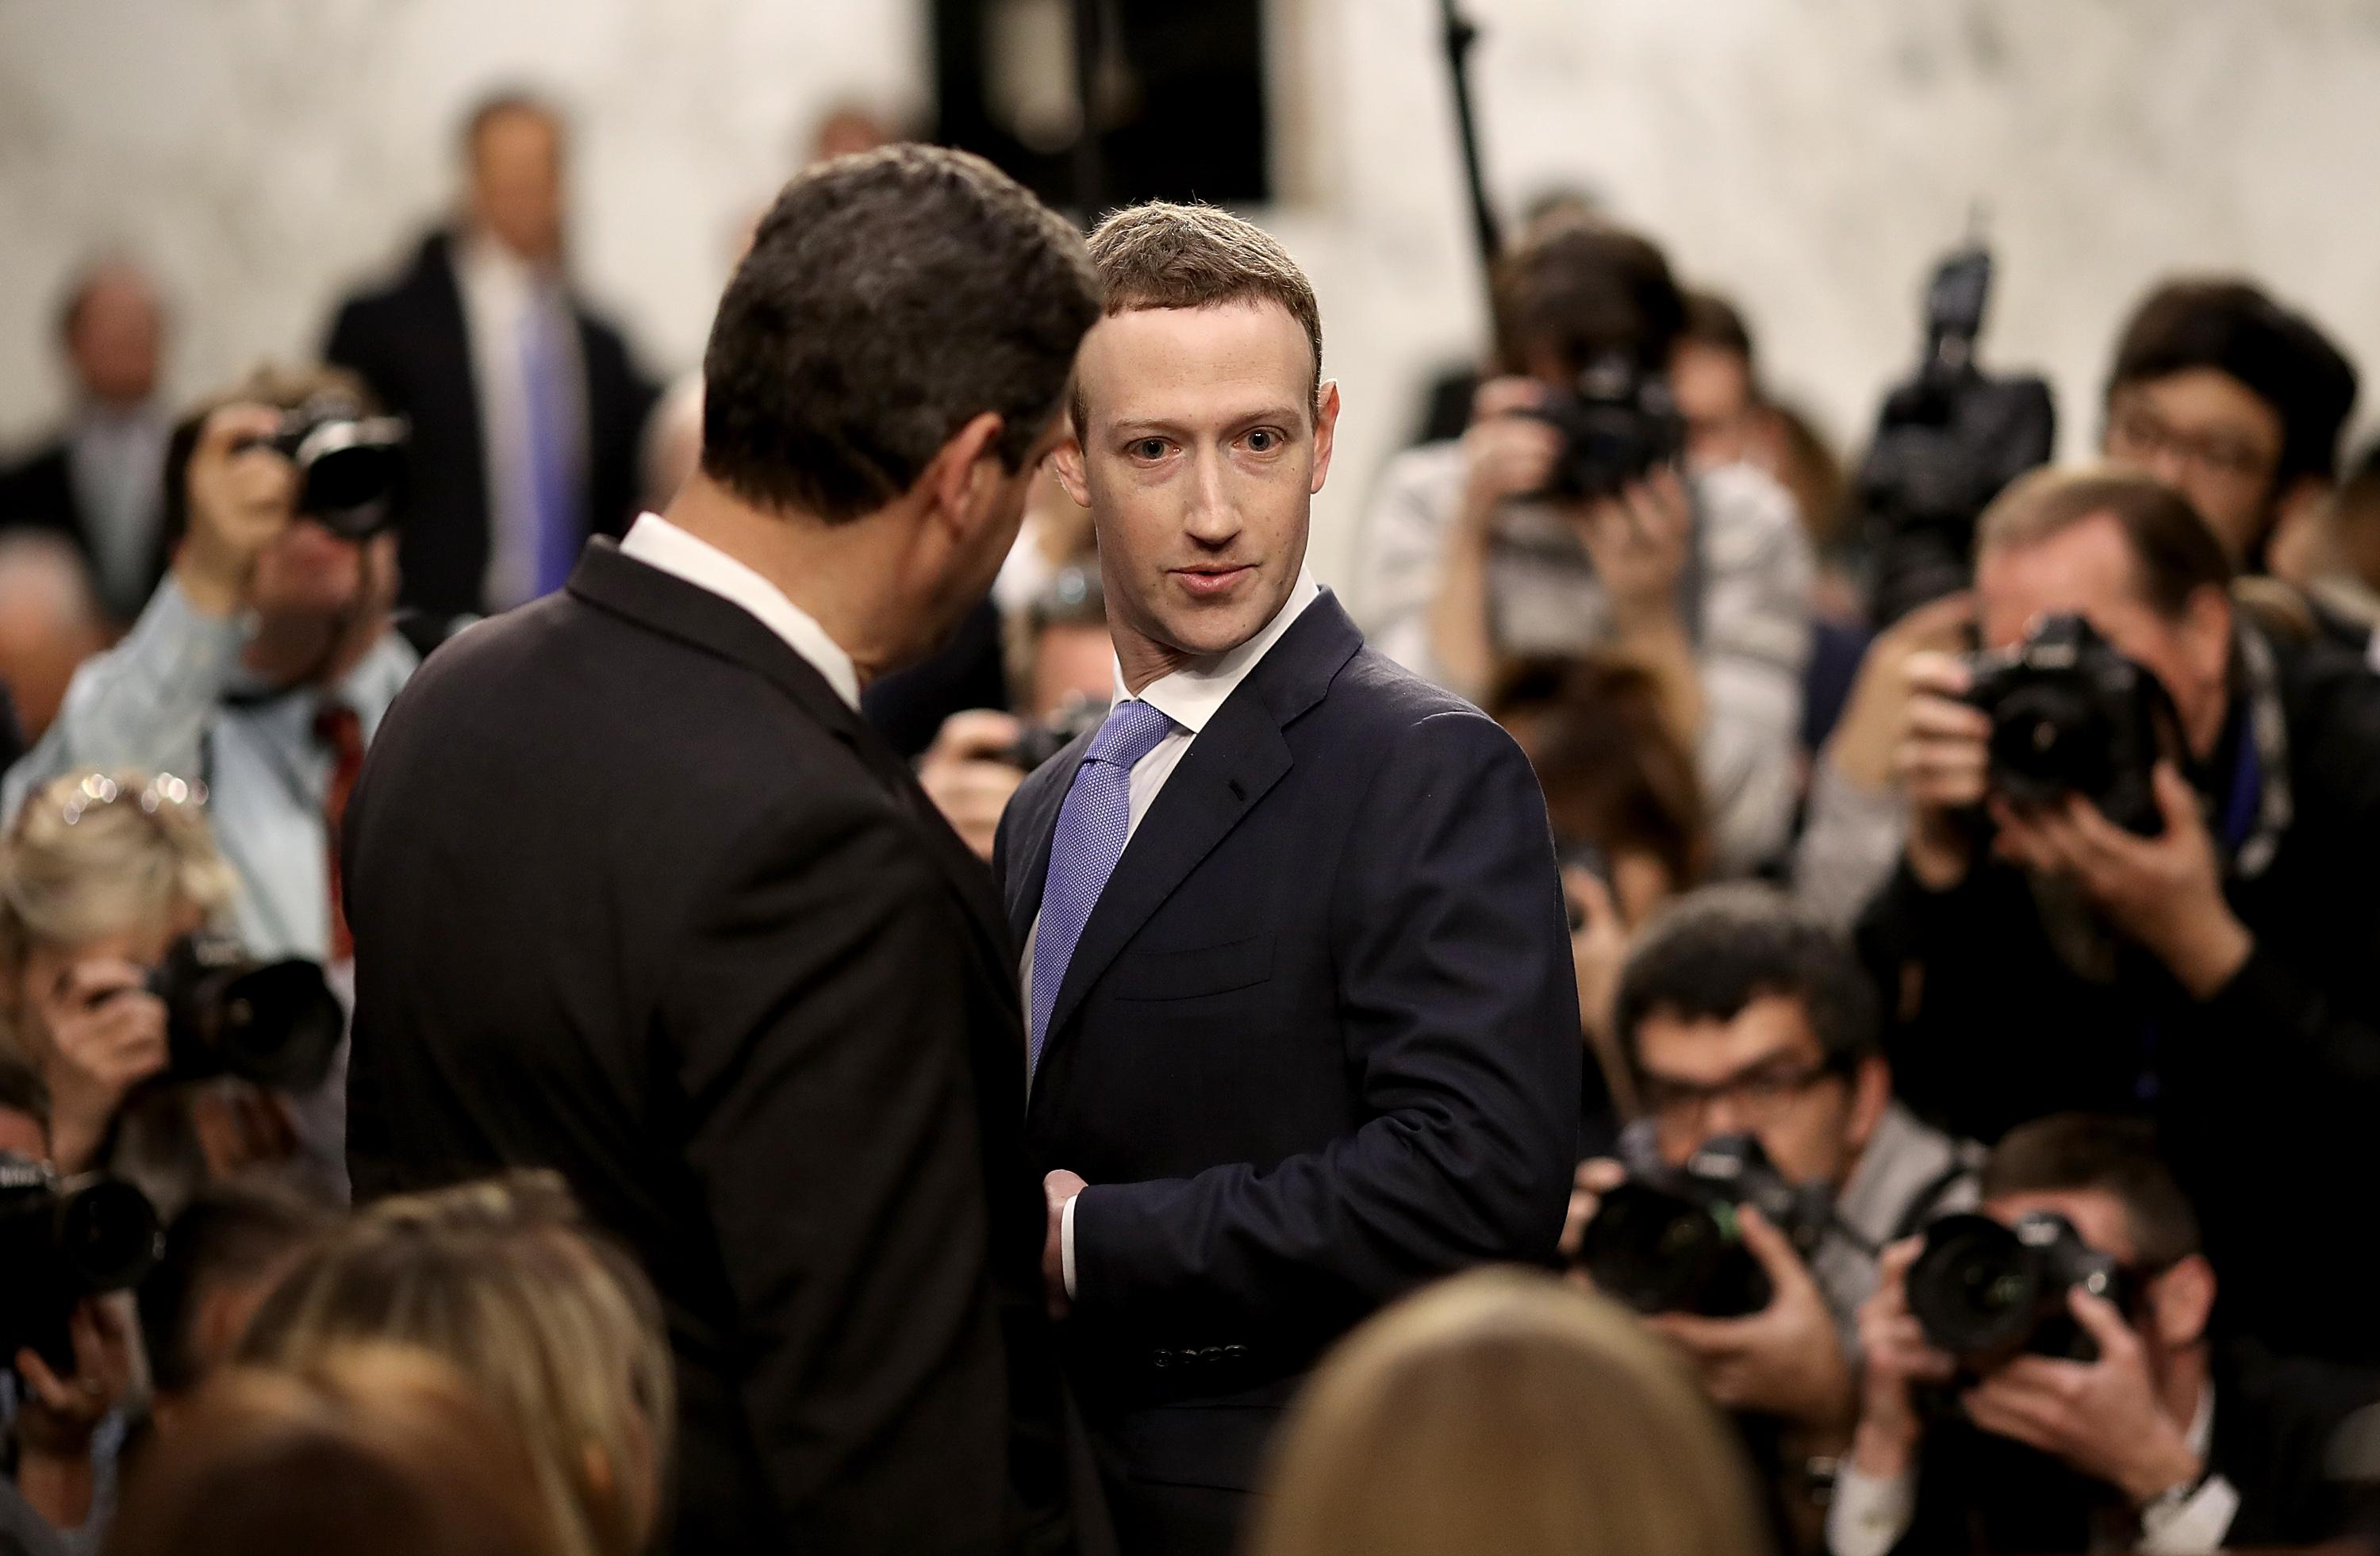 WASHINGTON, DC - APRIL 10:  Facebook co-founder, Chairman and CEO Mark Zuckerberg (R) arrives to testify before a combined Senate Judiciary and Commerce committee hearing in the Hart Senate Office Building on Capitol Hill April 10, 2018 in Washington, DC. Zuckerberg, 33, was called to testify after it was reported that 87 million Facebook users had their personal information harvested by Cambridge Analytica, a British political consulting firm linked to the Trump campaign.  (Photo by Win McNamee/Getty Images)